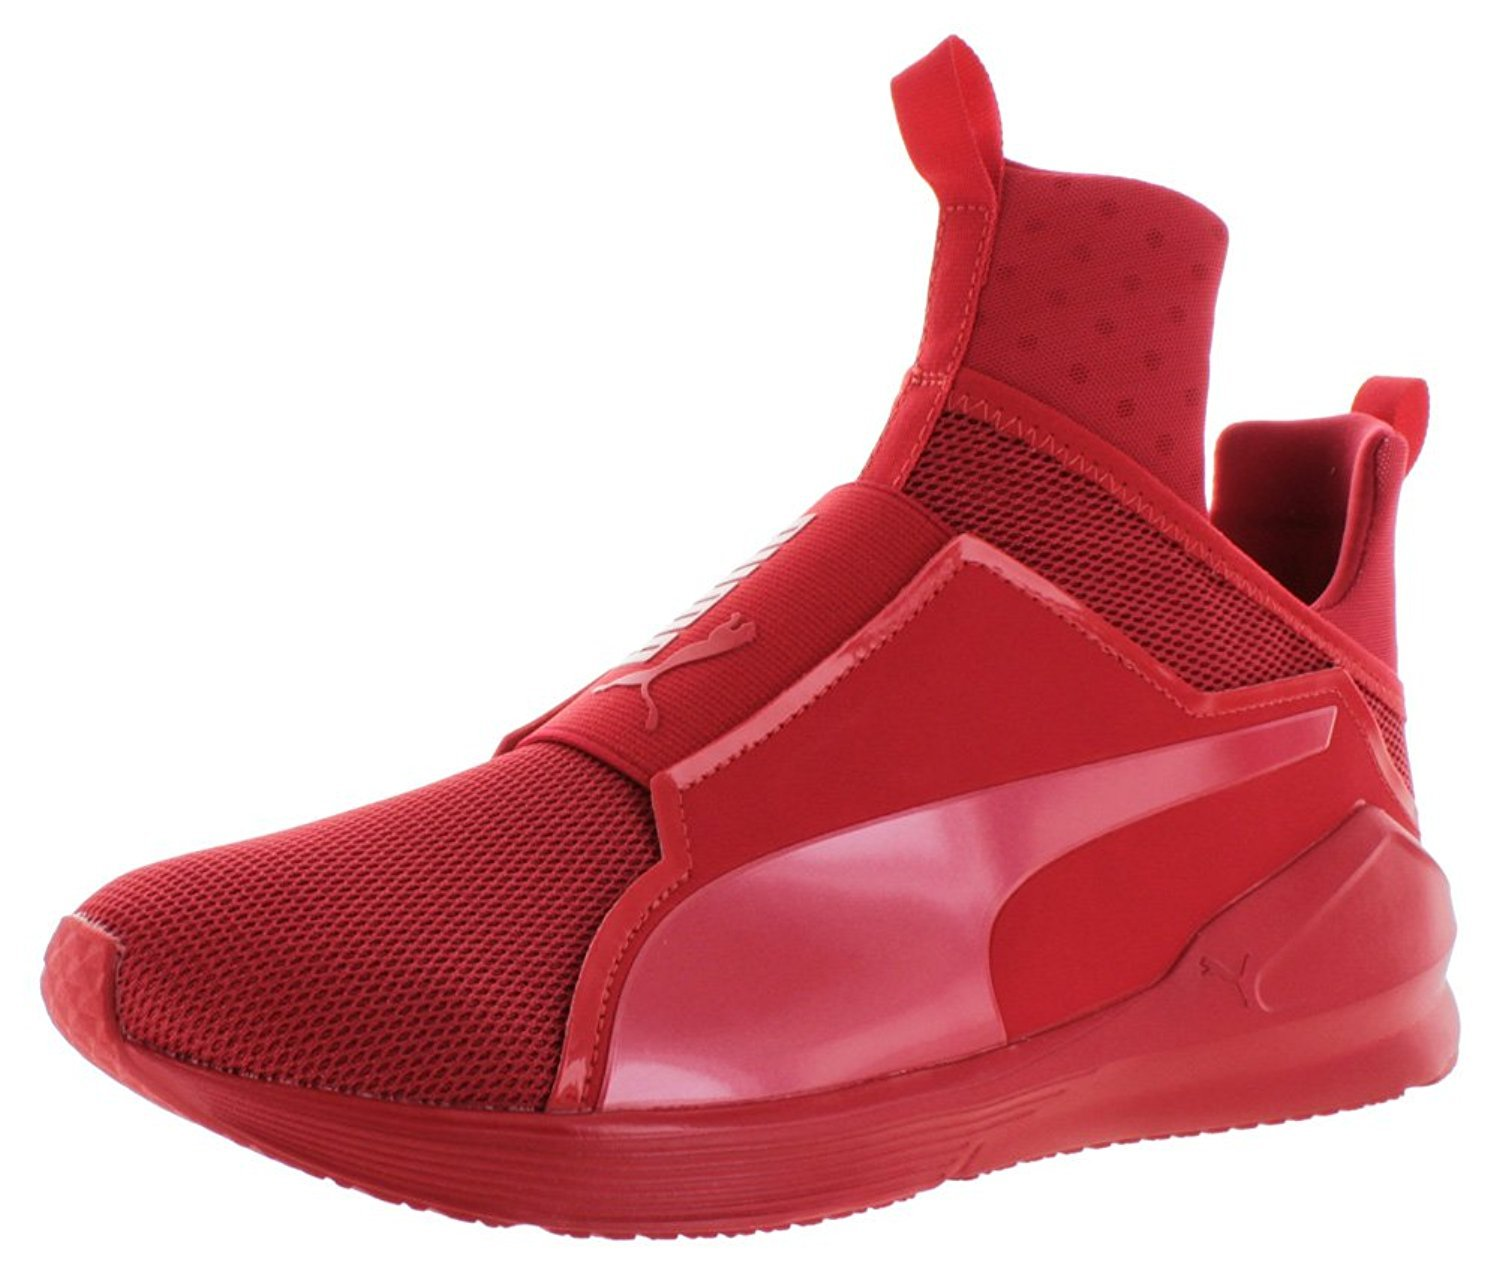 PUMA Men's Fierce Core High Risk Red/Ankle-High Training Shoes - 10.5M by PUMA